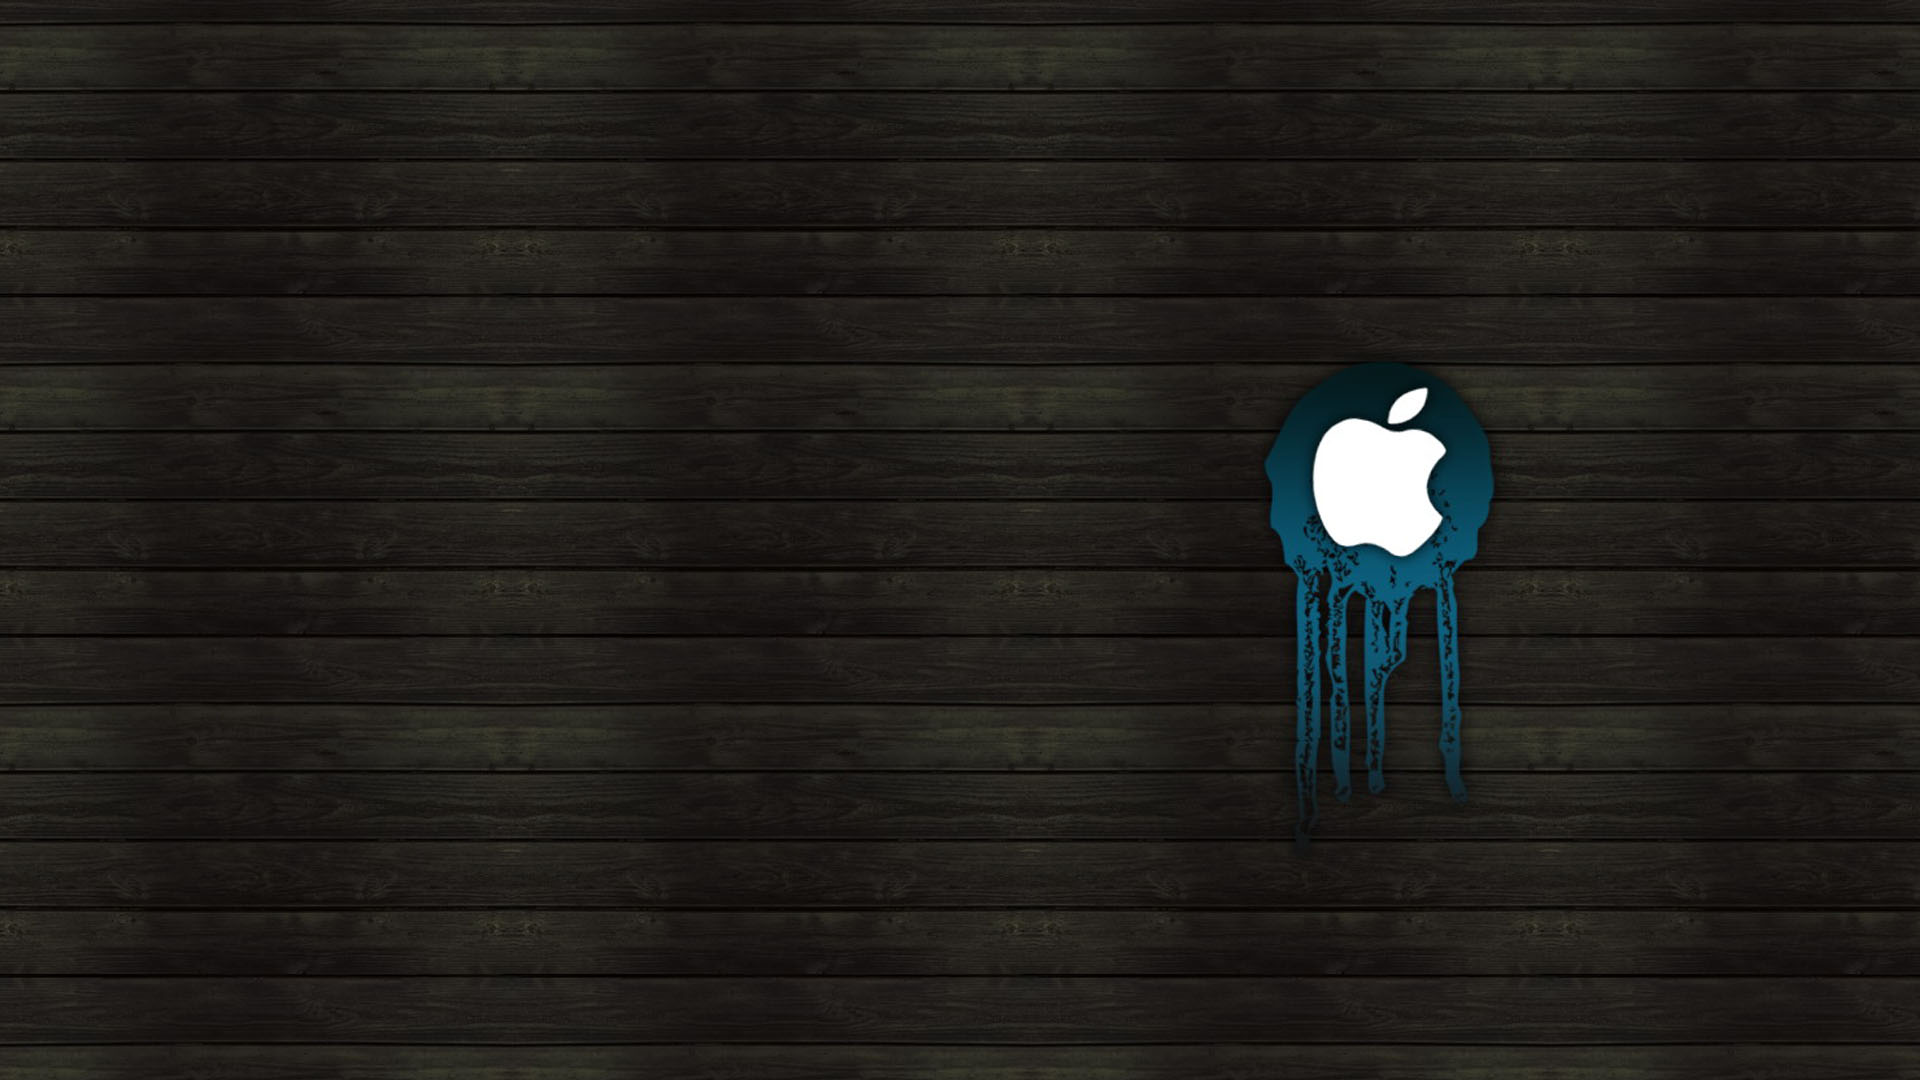 Apple MacBook Pro Desktop Backgrounds HD Wallpaper for your desktop 1920x1080